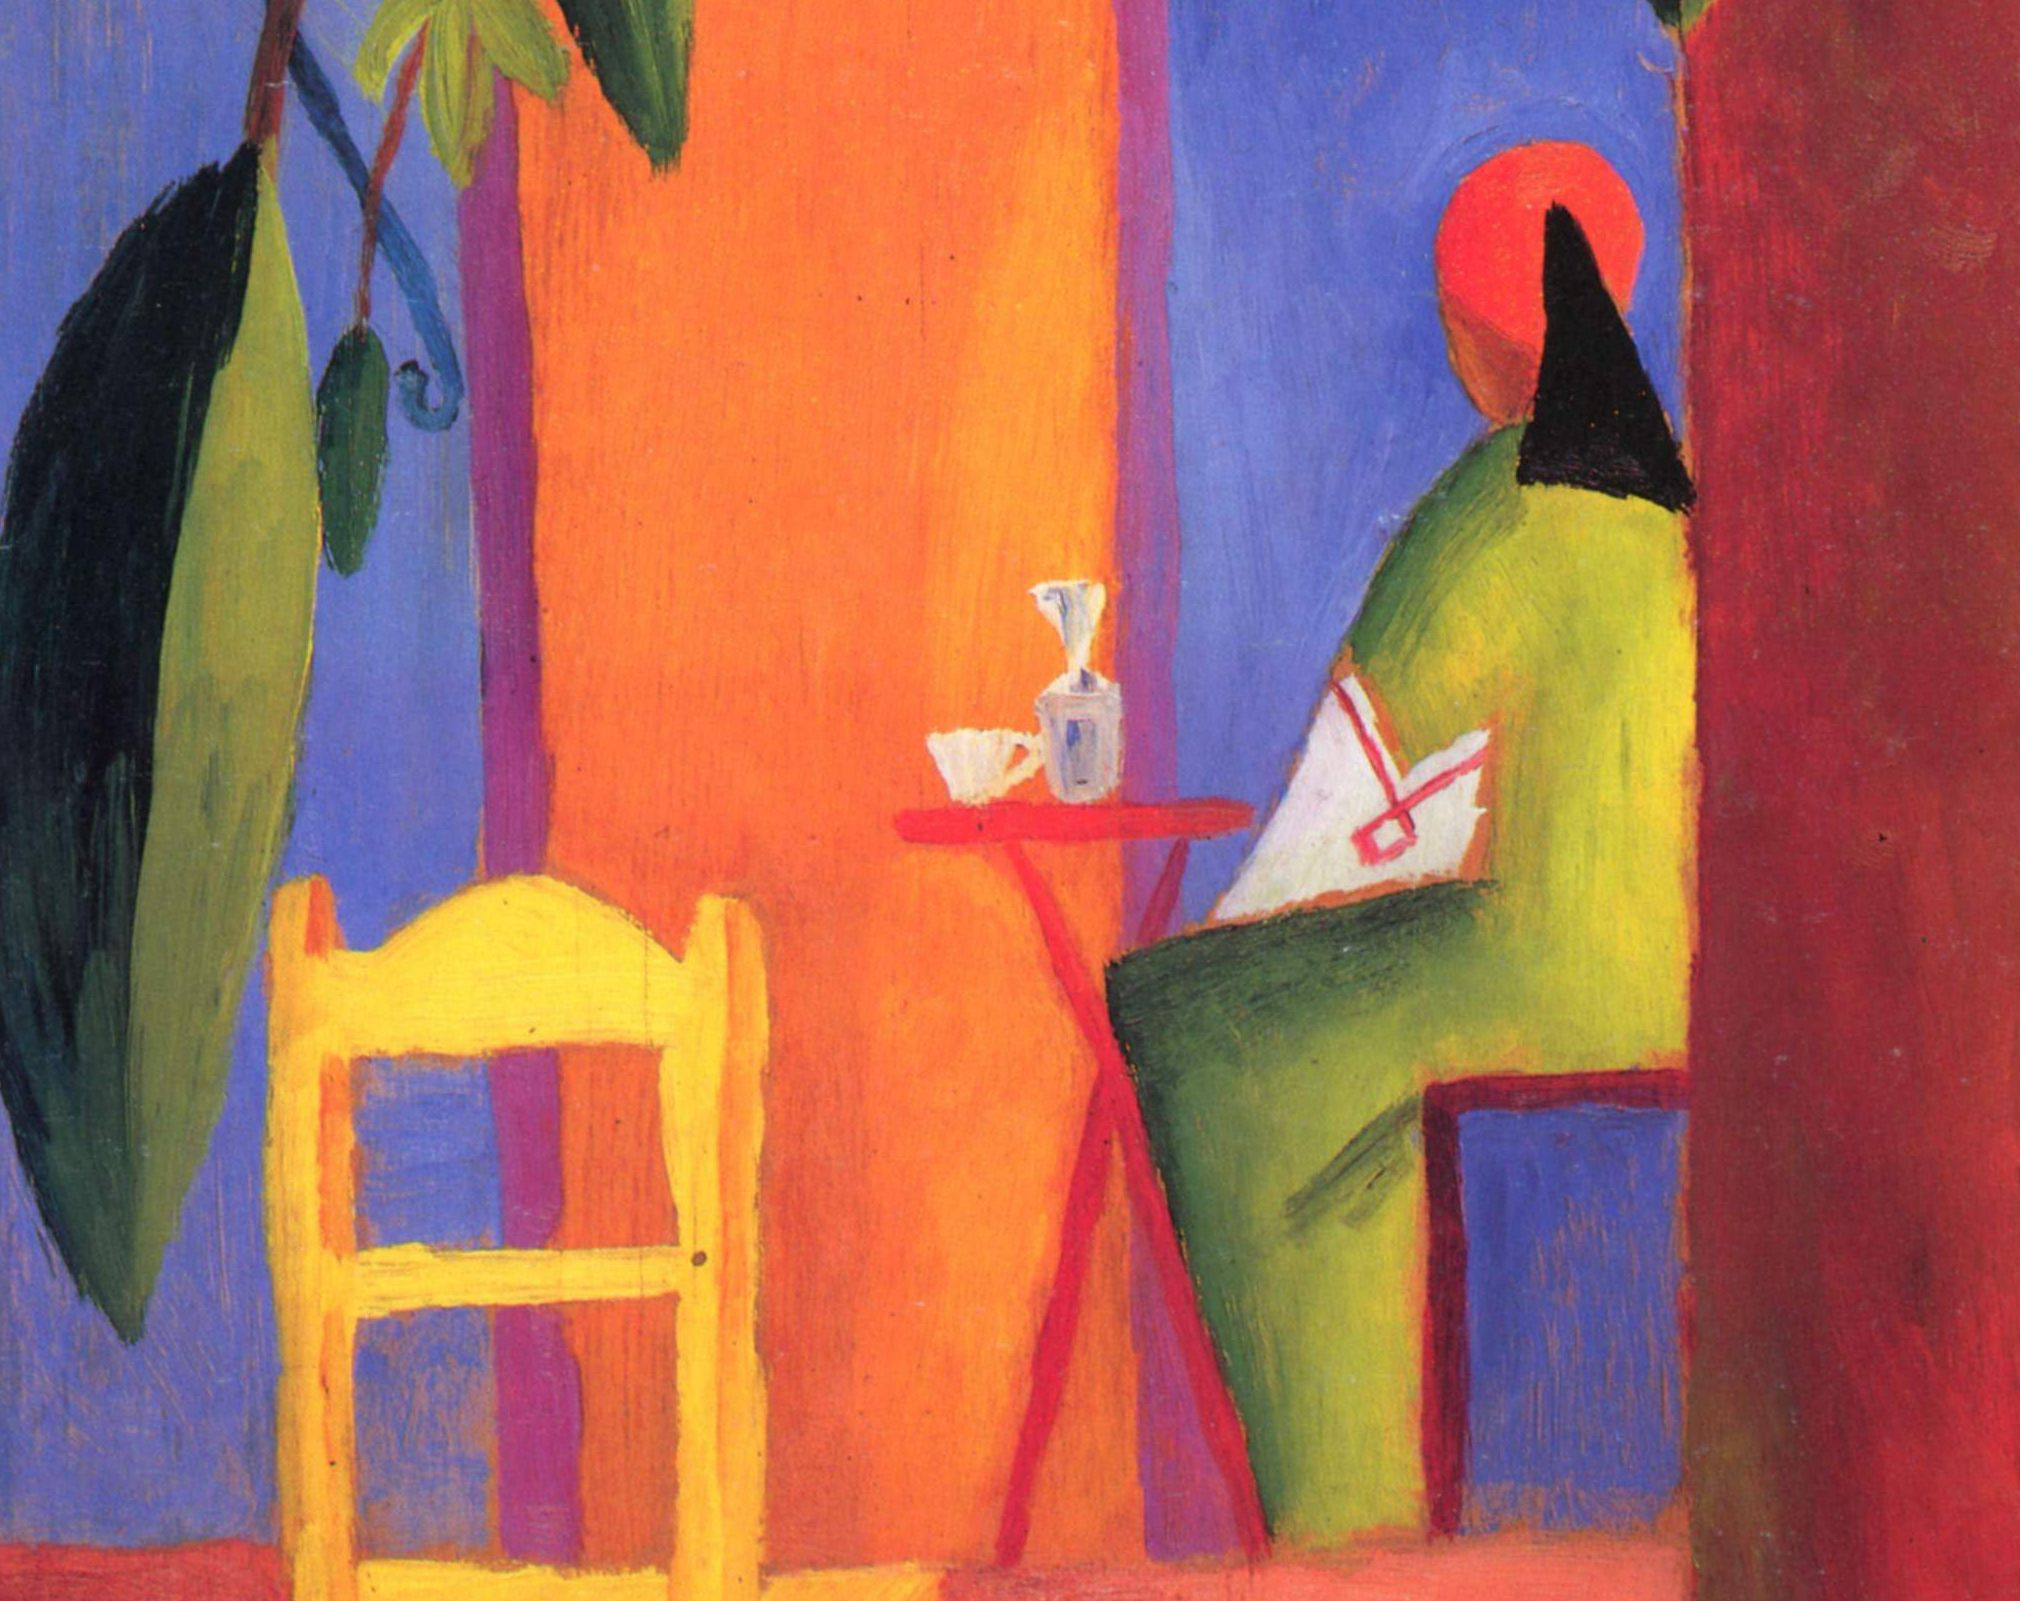 August Macke HD Wallpaper